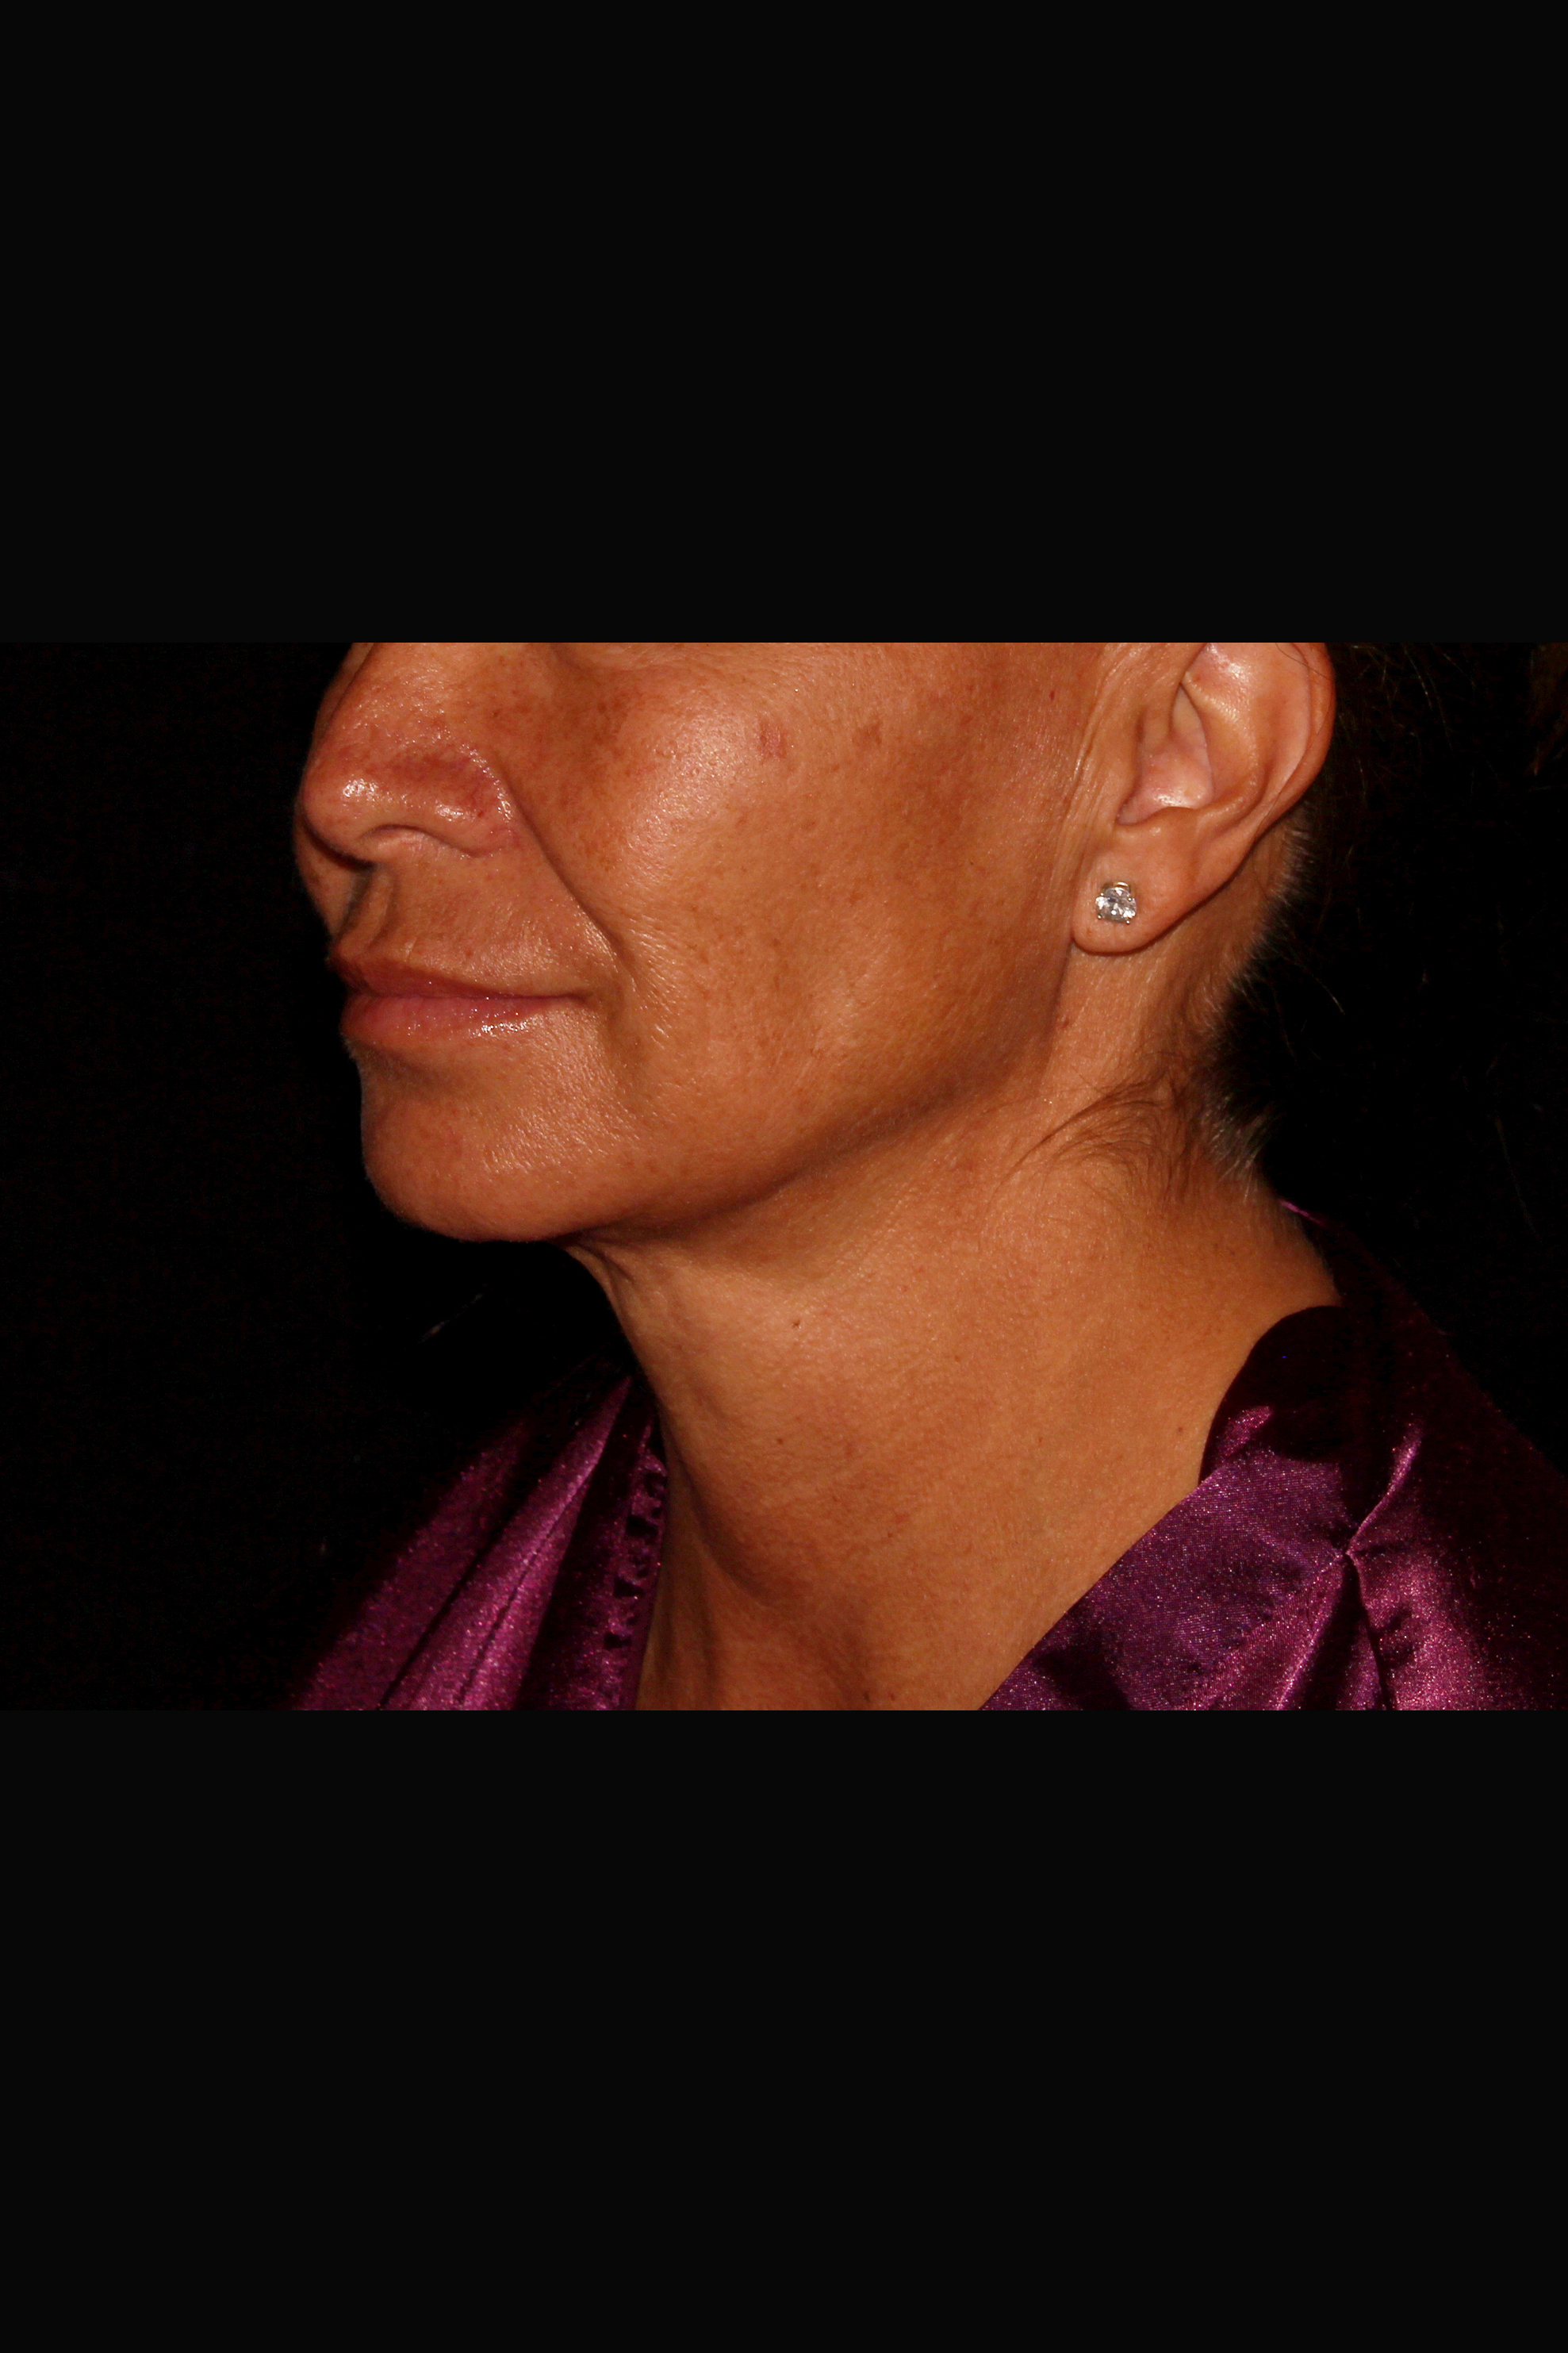 After Neck Liposuction - Magic Tight to the Neck & Buccal Fat Pad Removal